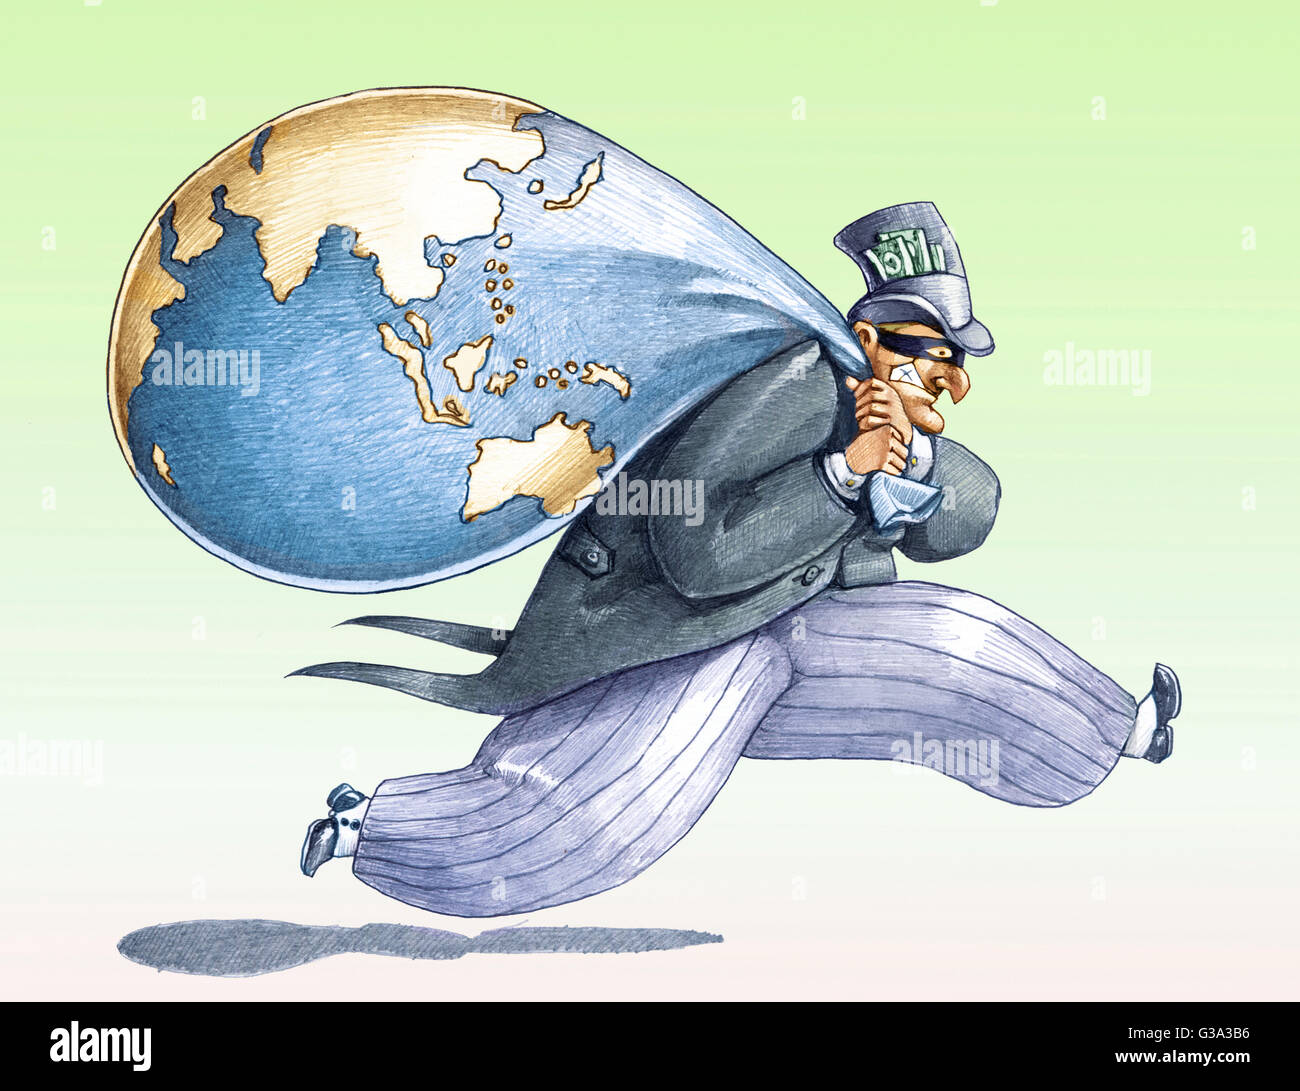 a rich masked steals the world - Stock Image